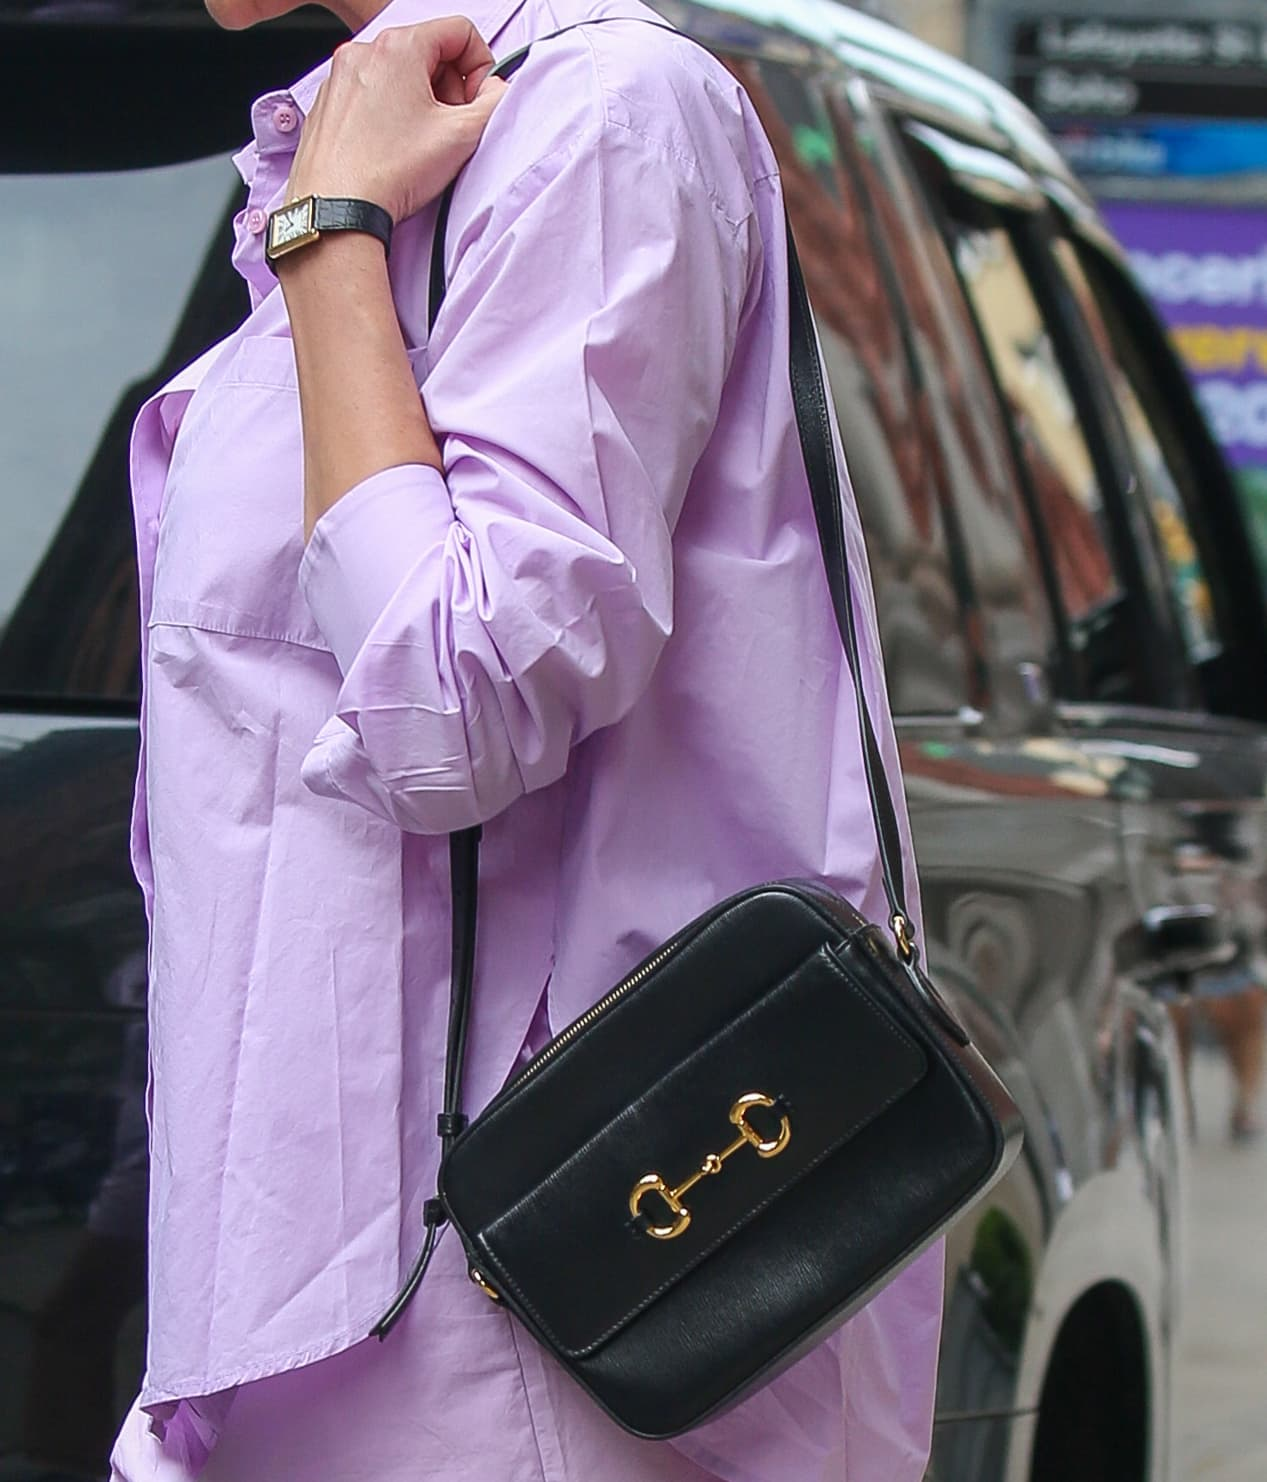 Karlie Kloss carries a Gucci Horsebit 1955 black leather bag from the vintage-inspired 1955 collection